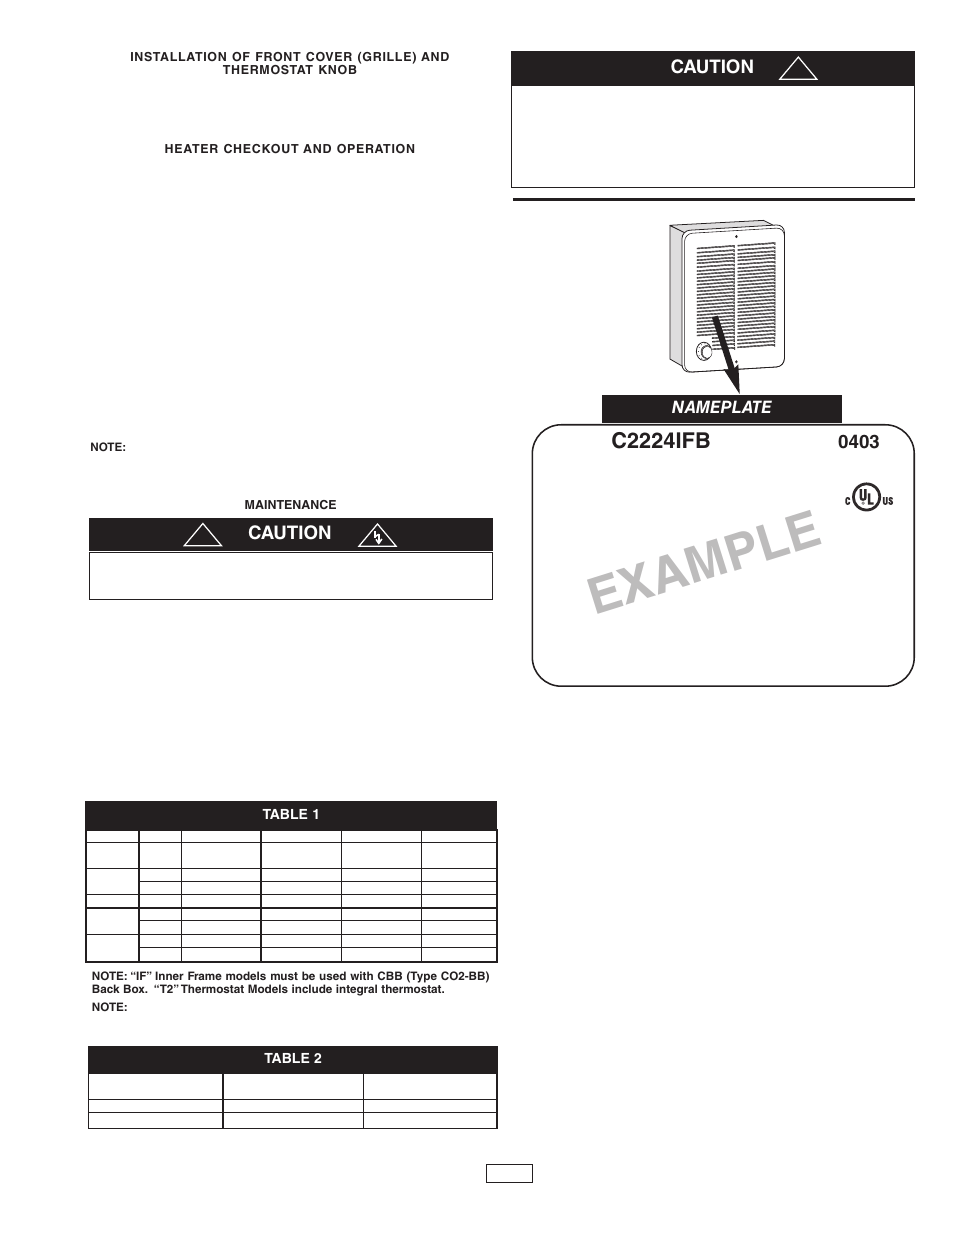 hight resolution of example c2224ifb caution qmark cra series residential fan forced zonal wall heaters user manual page 3 12